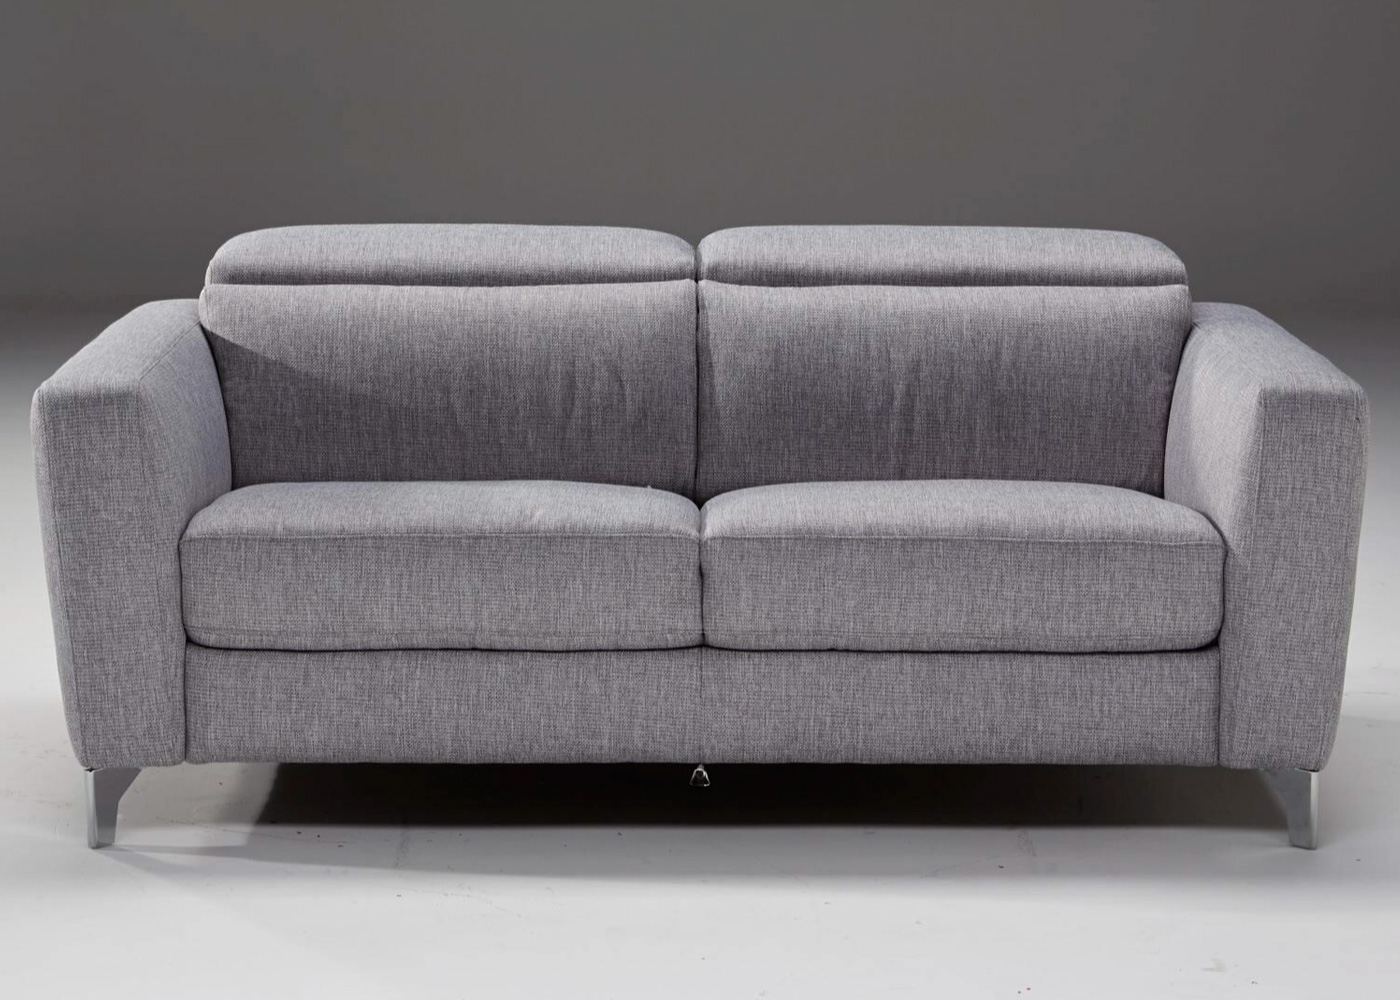 natuzzi electric recliner sofa crawford futon bed with storage italia 39volo 39 reclining 3str and standard